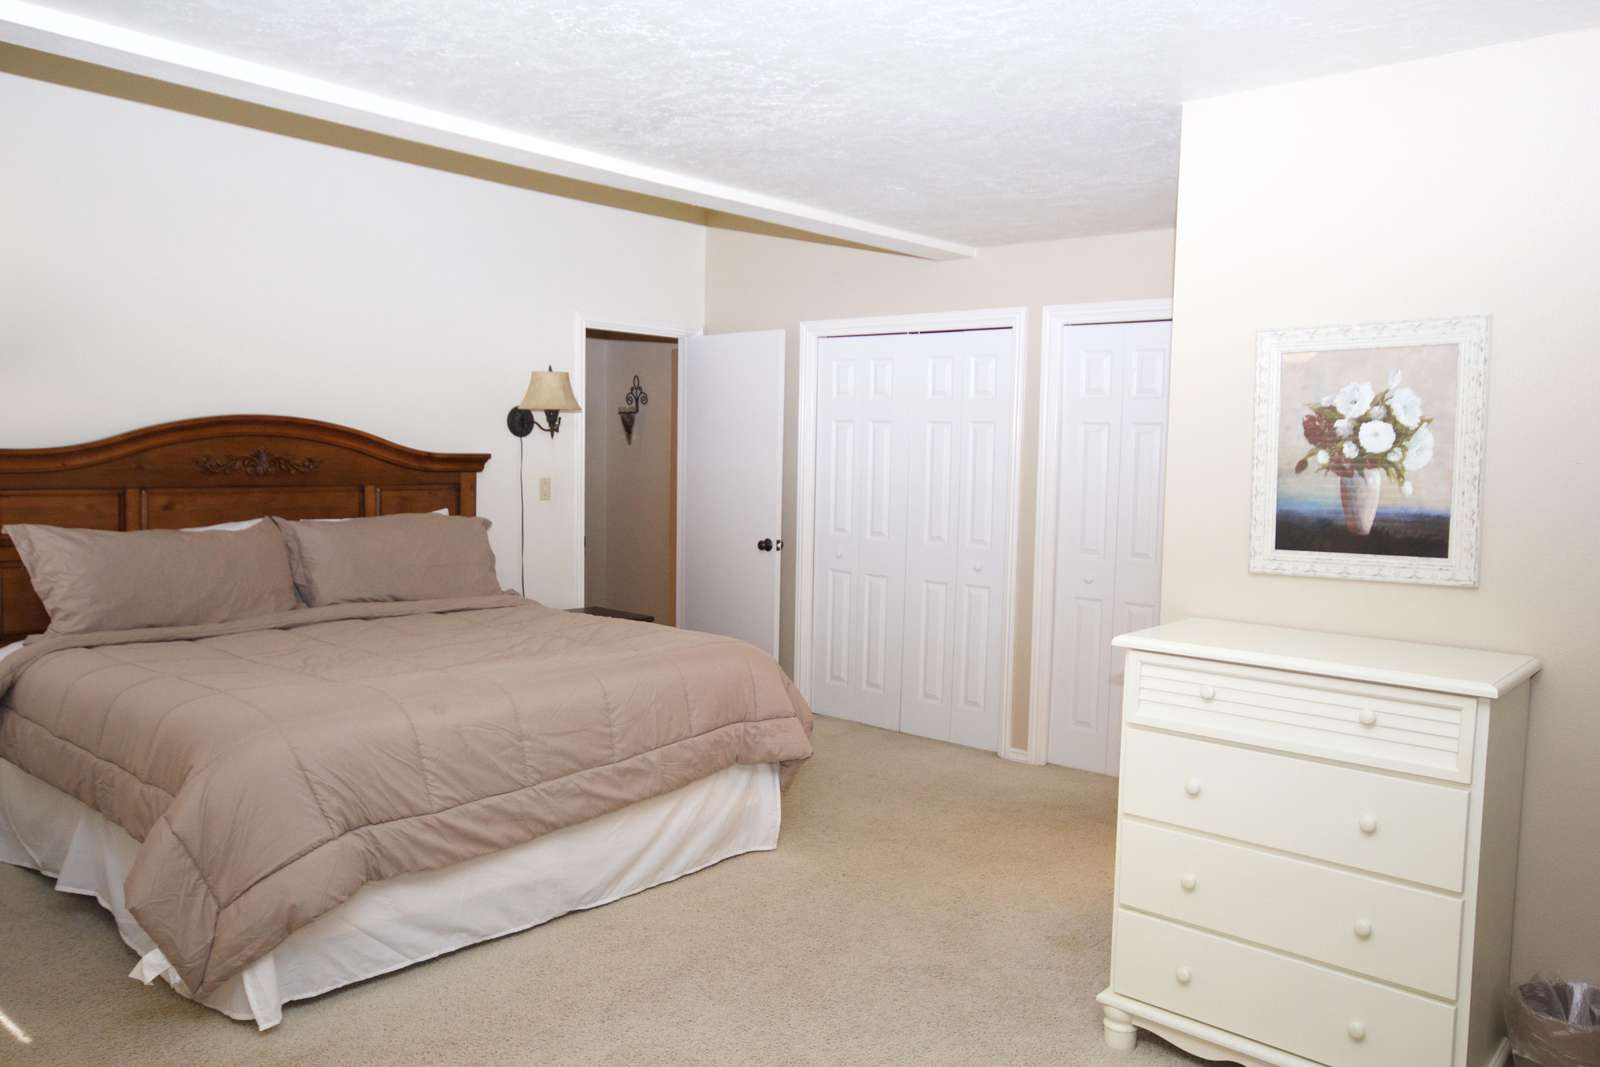 Master Bedroom = 1 King, 2 Full + 1 Twin Trundle + 1 Sofa Bed = 5 BEDS